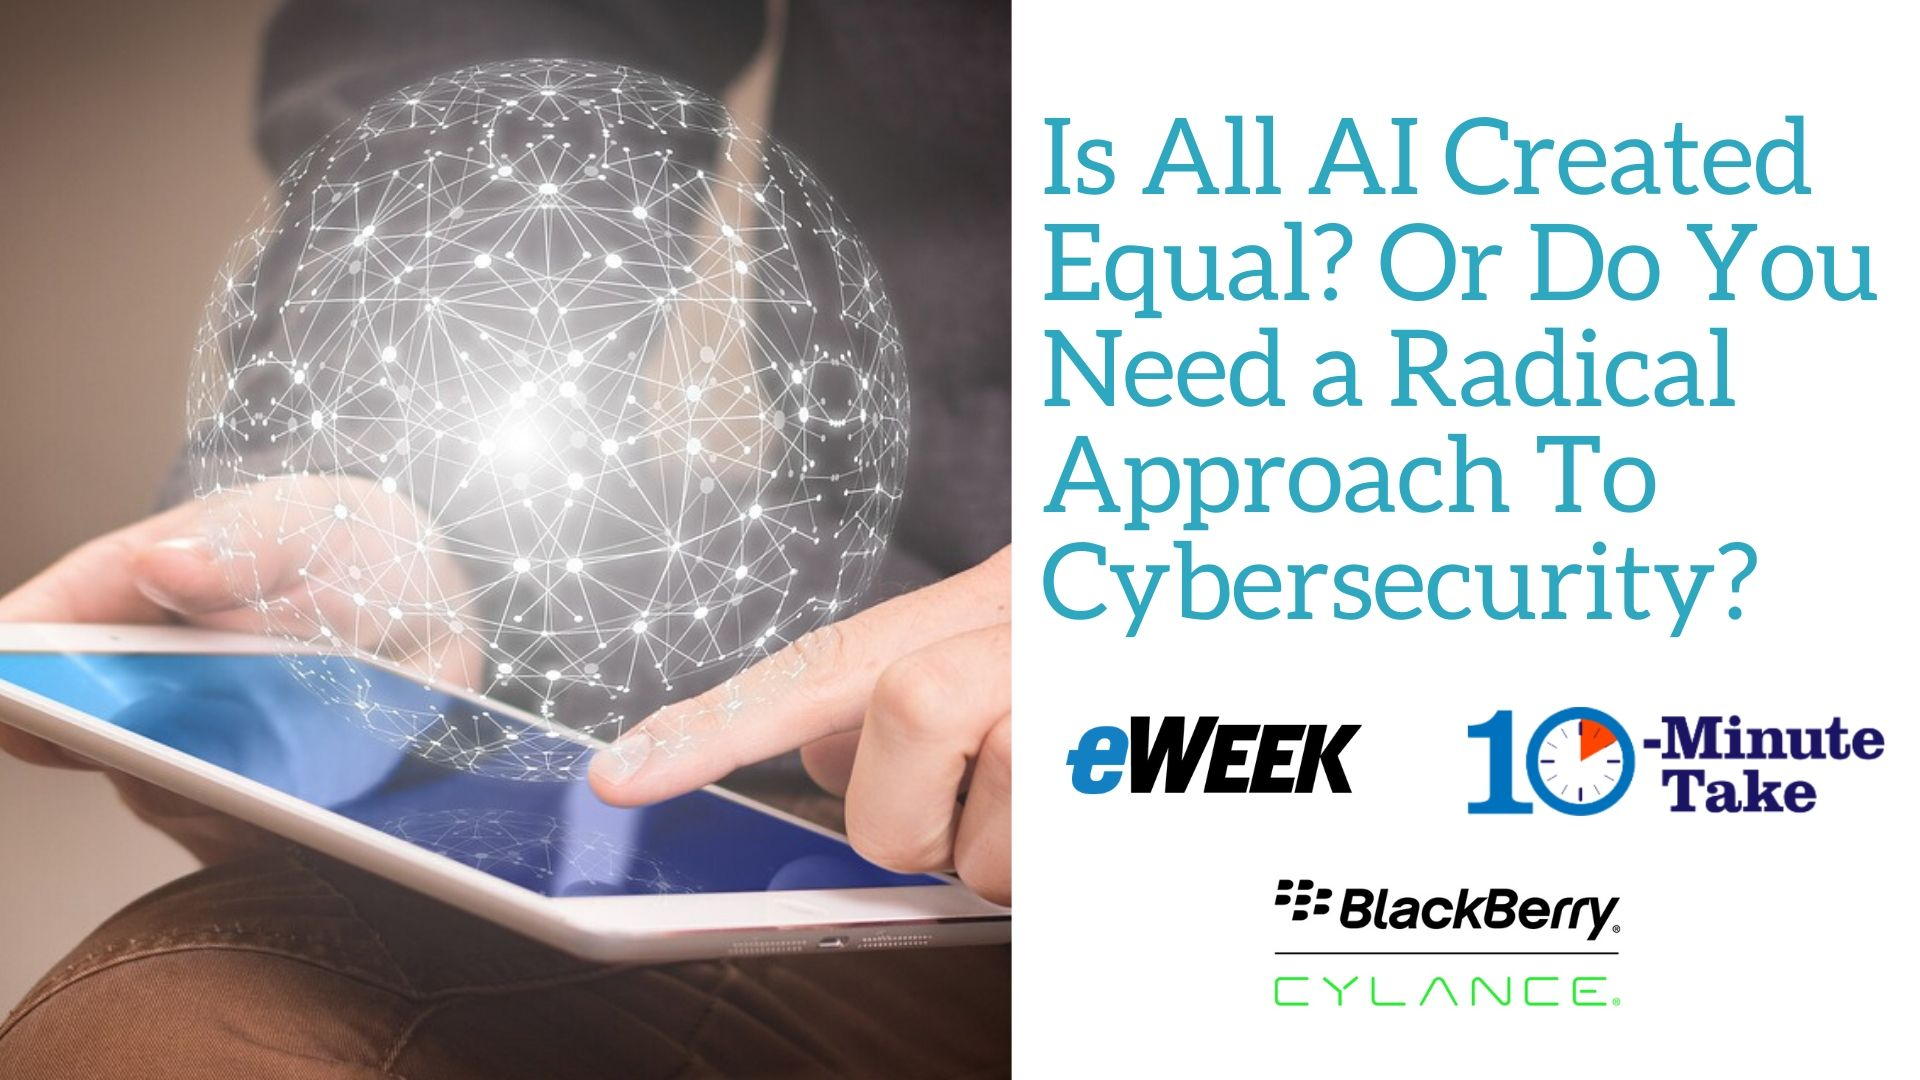 Is All AI Created Equal? Or Do You Need a Radical Approach To Cybersecurity? -TechProspect